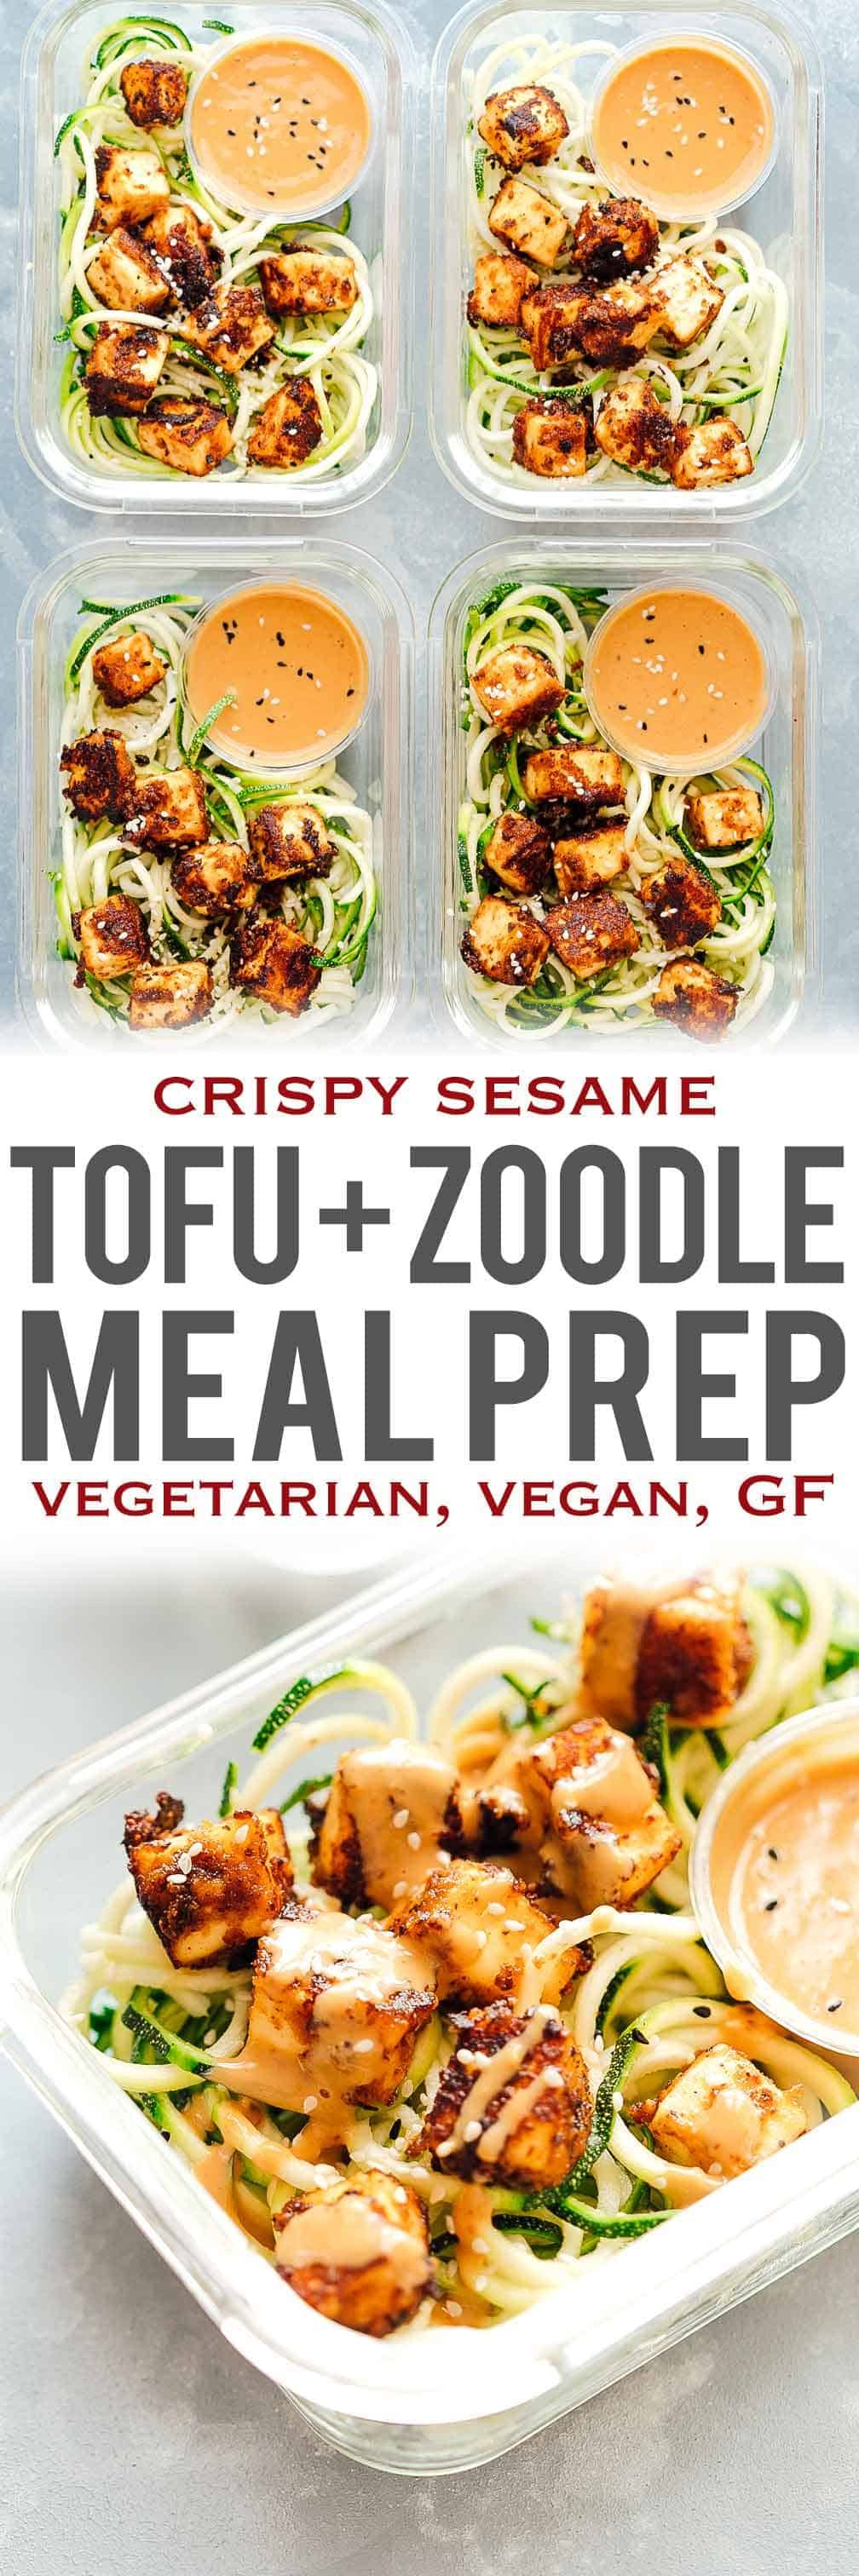 Crispy sesame tofu with zucchini noodles is the perfect healthy, vegetarian meal prep lunch recipe that is low carb, vegan and gluten free too. These easy meal prep lunches are served with crispy sesame tofu on a bed of zucchini noodles and a delicious peanut sauce to go with! Healthy lunch recipe on the go! You can either eat it warm or cold like a salad. Store the sauce separately! #myfoodstory #recipe #crispy #vegan #sauce #noodles #healthy #honey